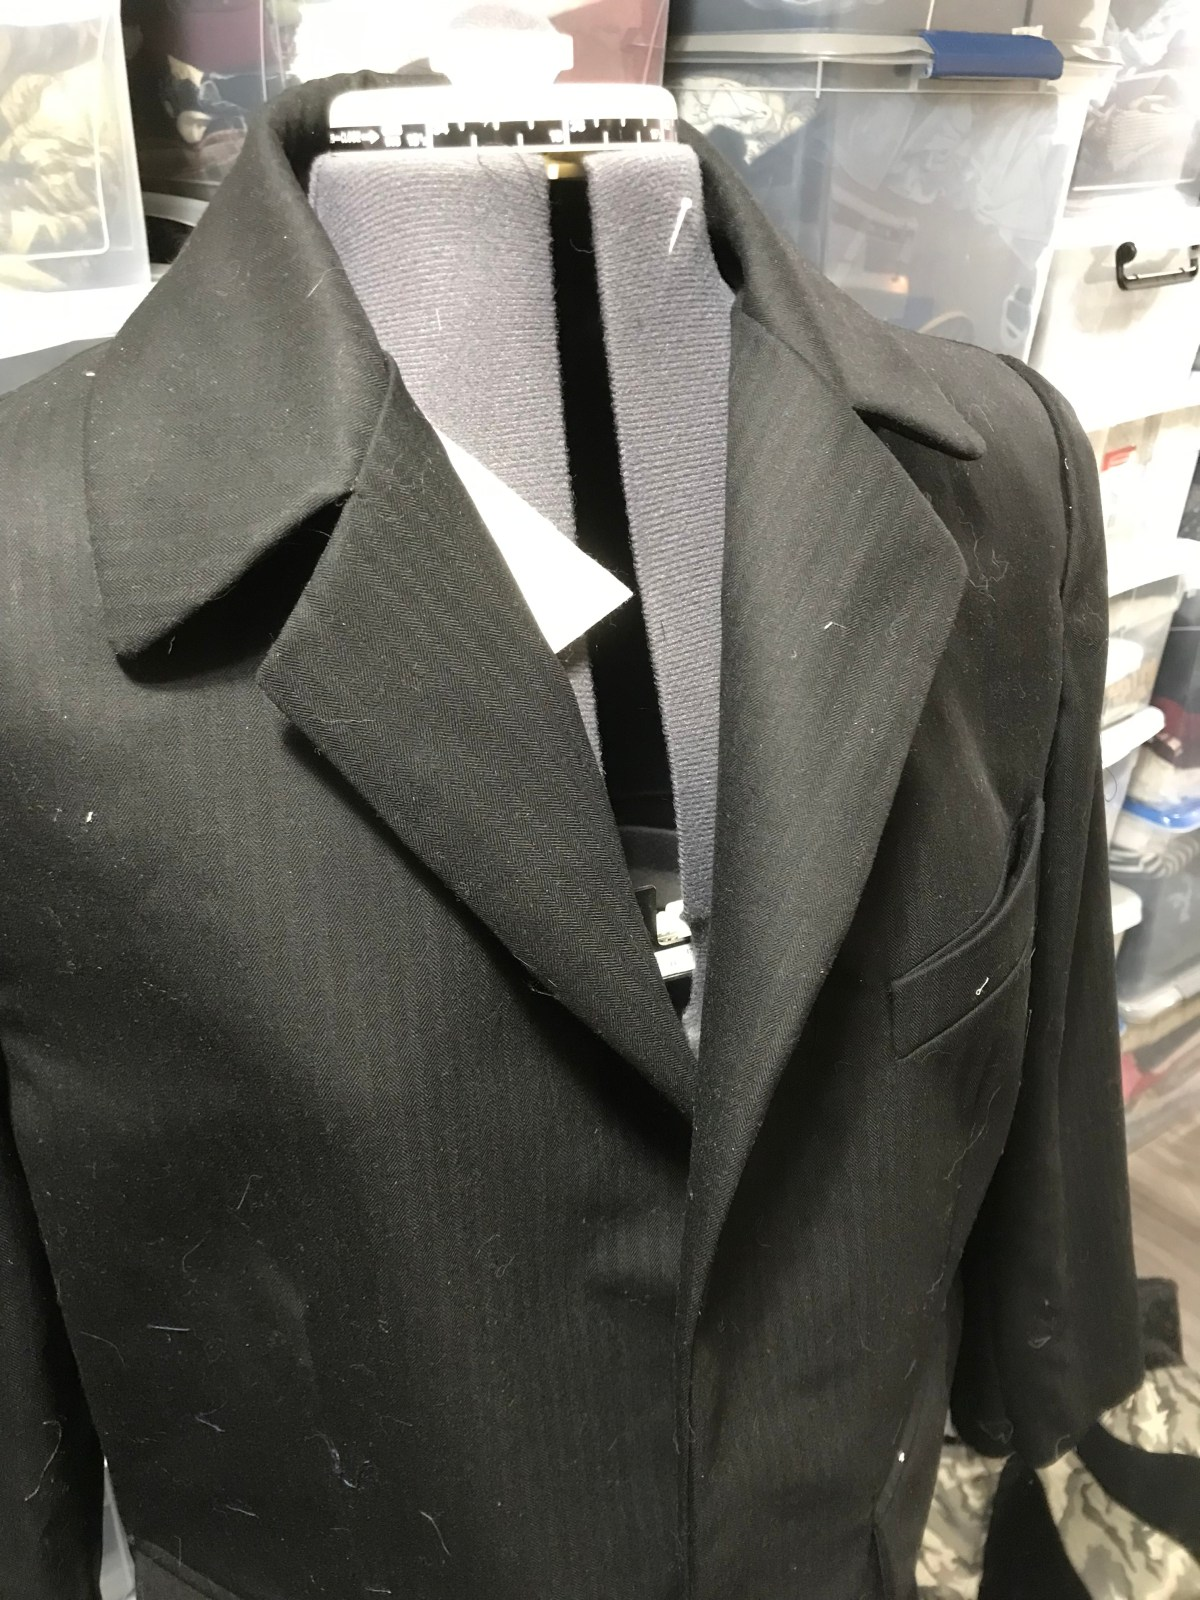 The finished jacket on a dressform